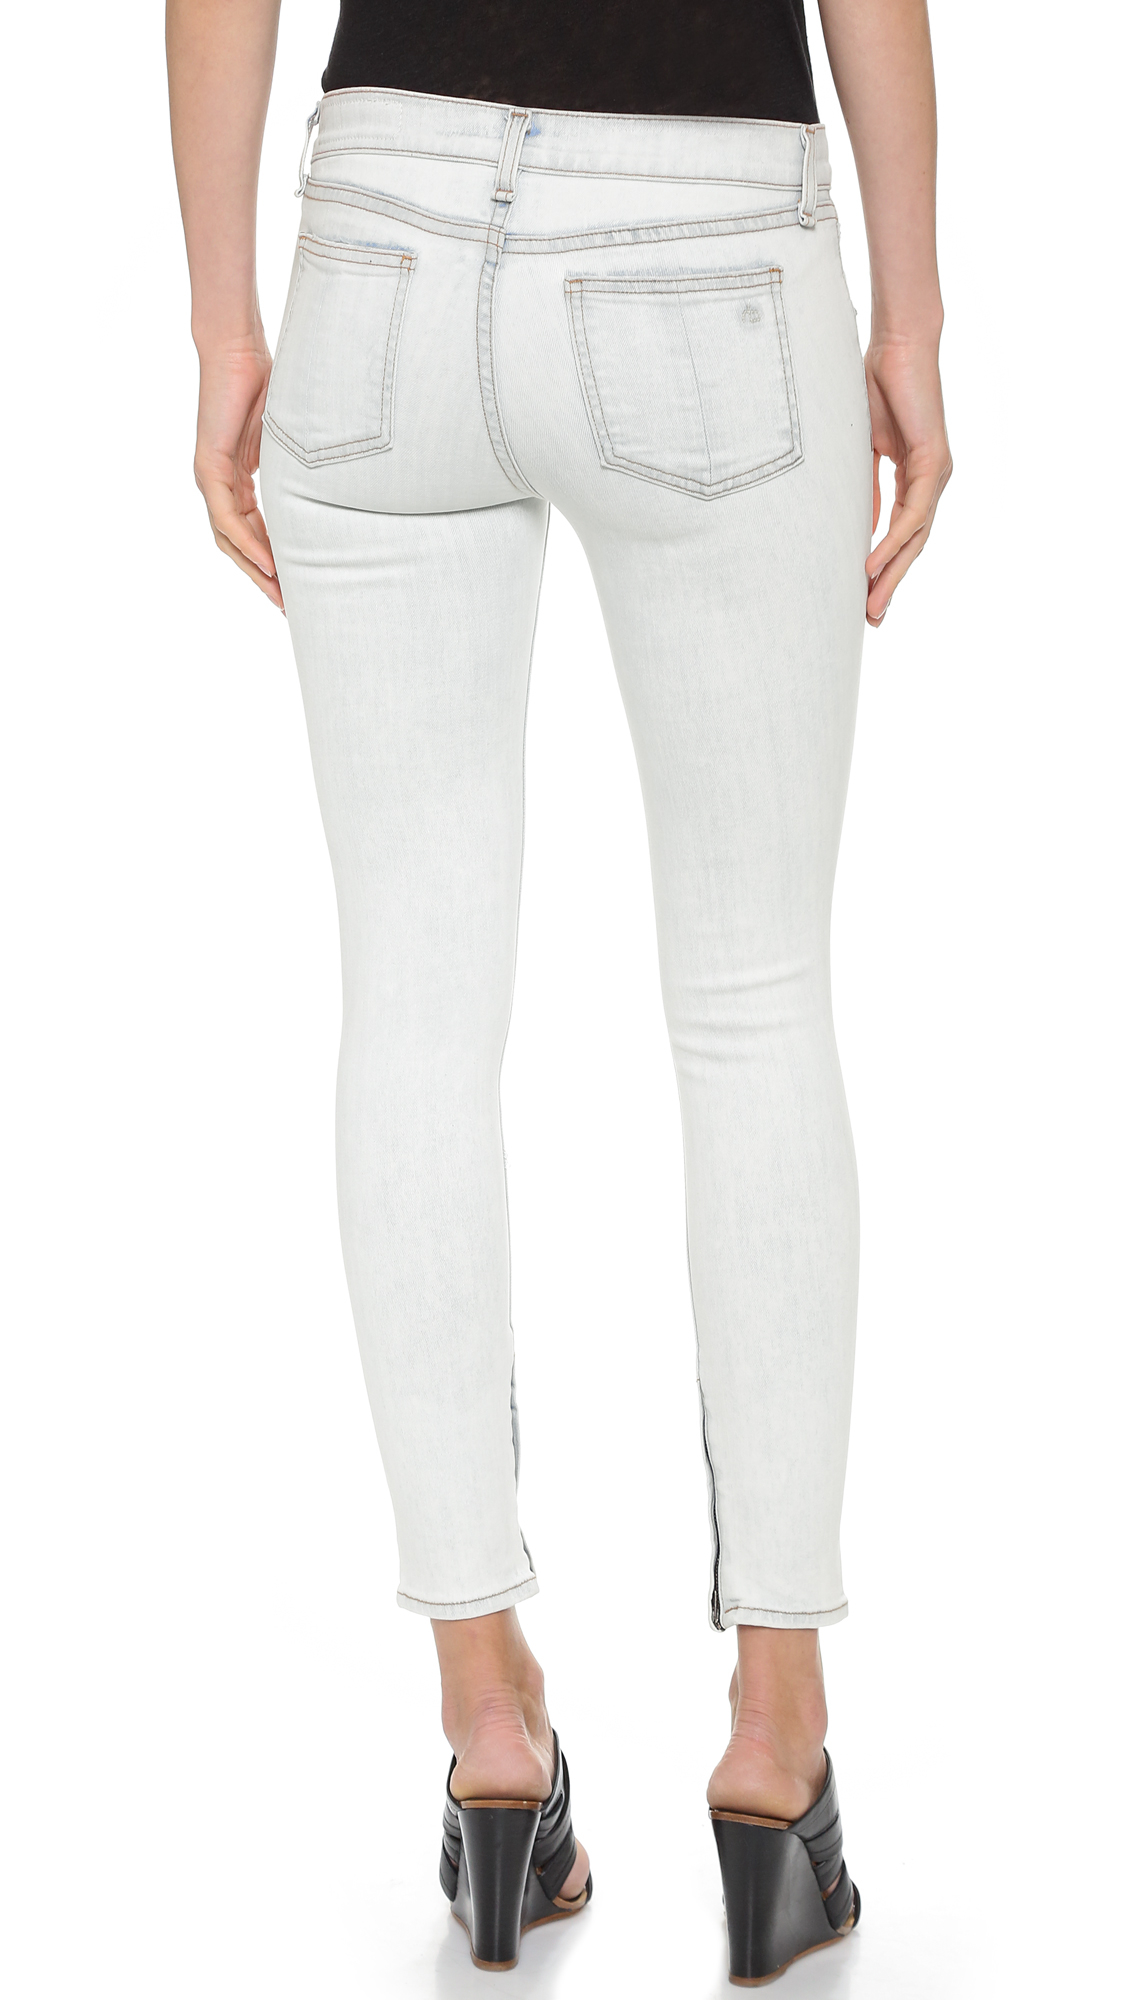 Rag & bone The Zipper Capri Jeans - Shredded Bleachout in White | Lyst